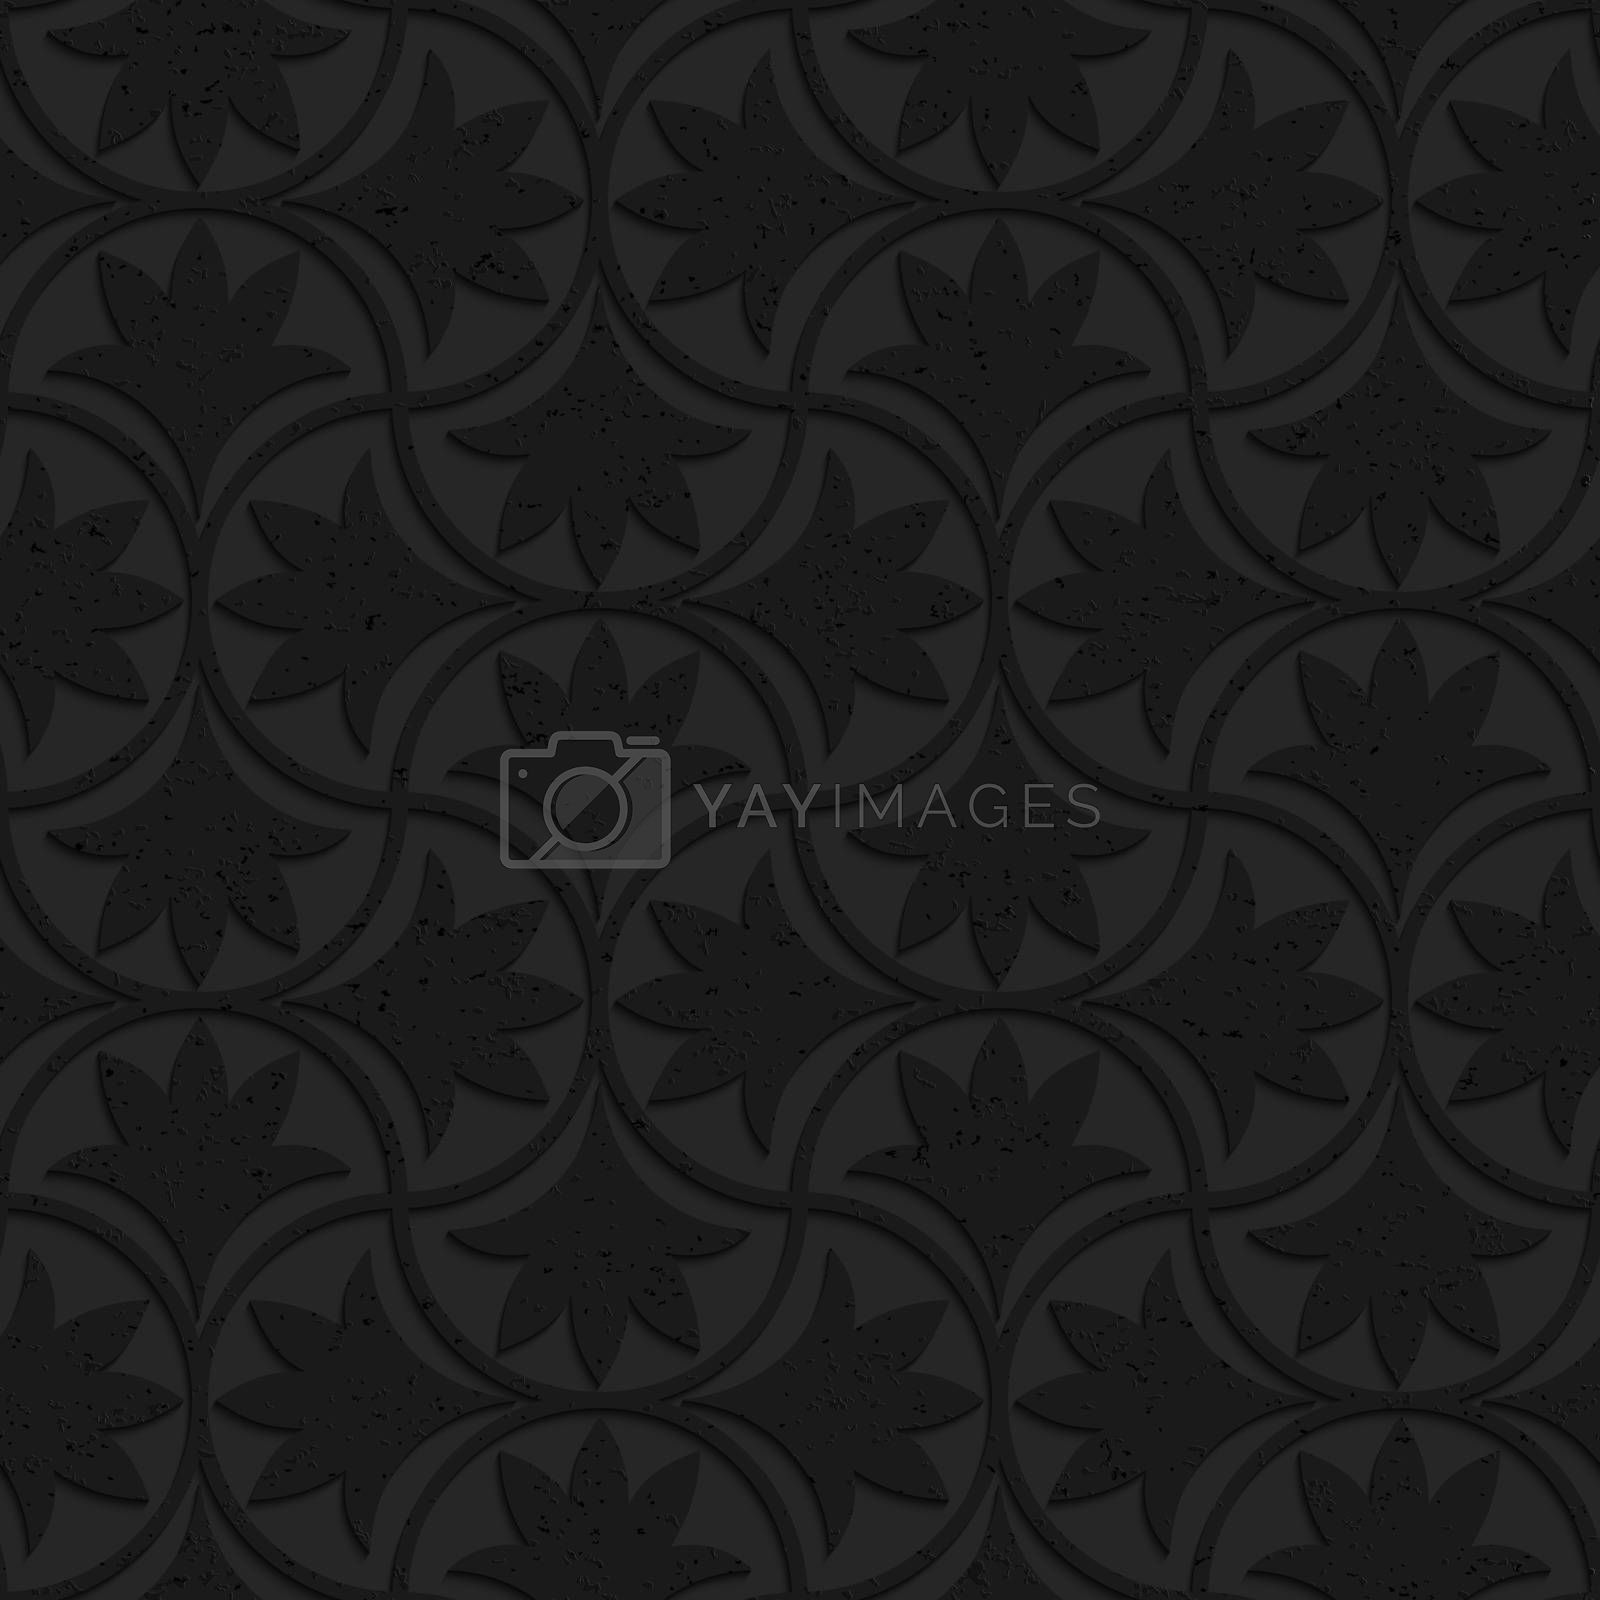 Textured black plastic floral pin will by Zebra-Finch